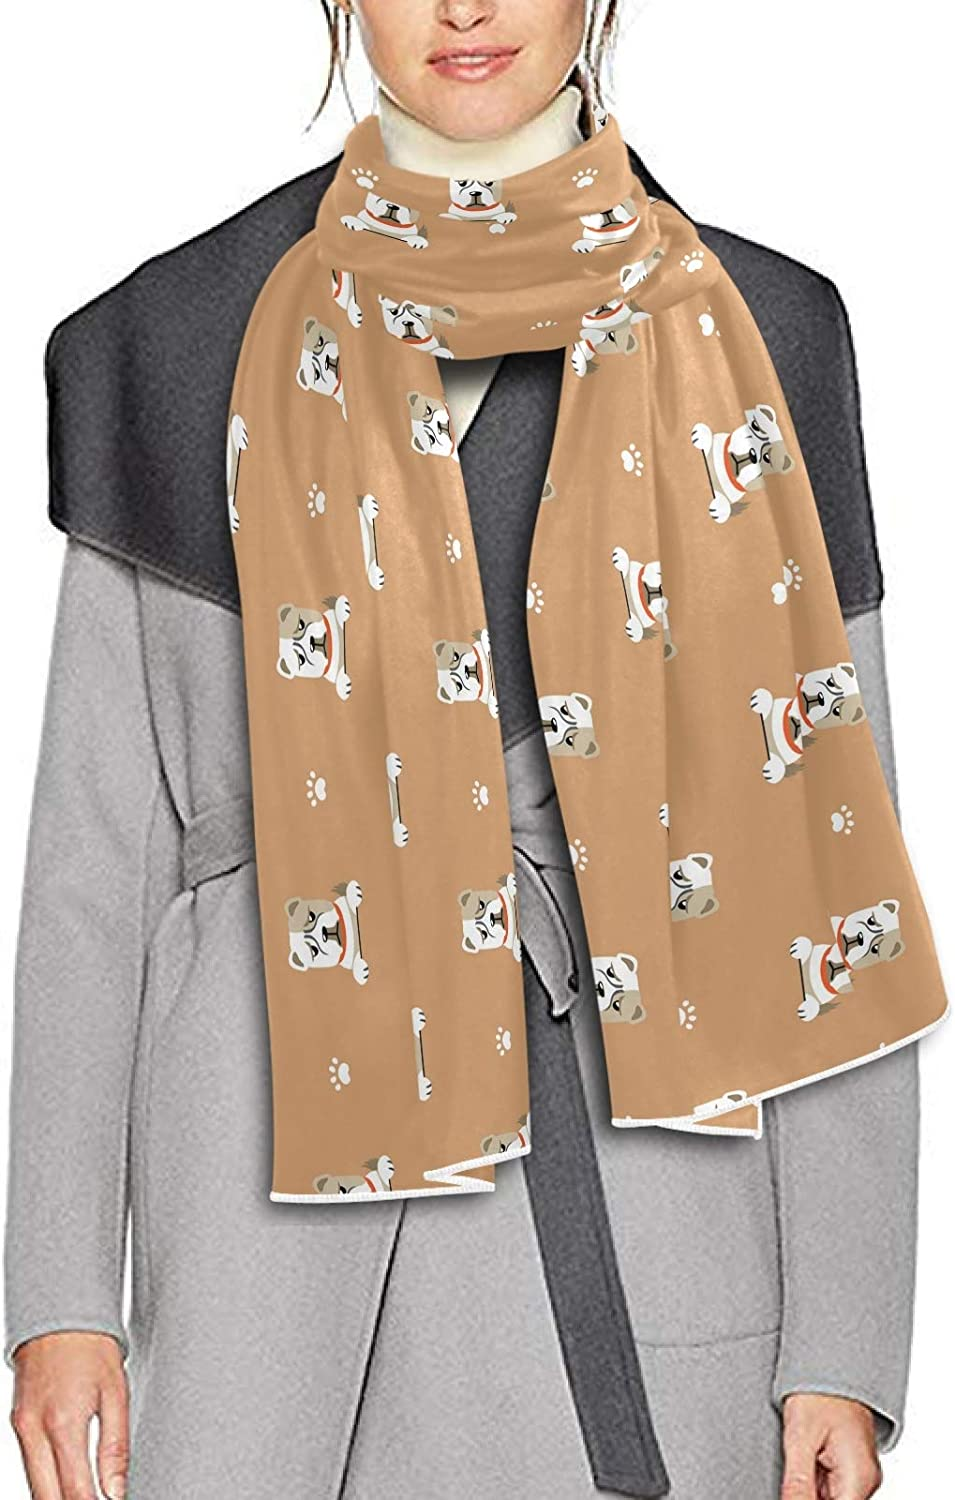 Scarf for Women and Men Cartoon Cute Dog Animal Blanket Shawl Scarves Wraps Soft Thick Winter Large Scarves Lightweight